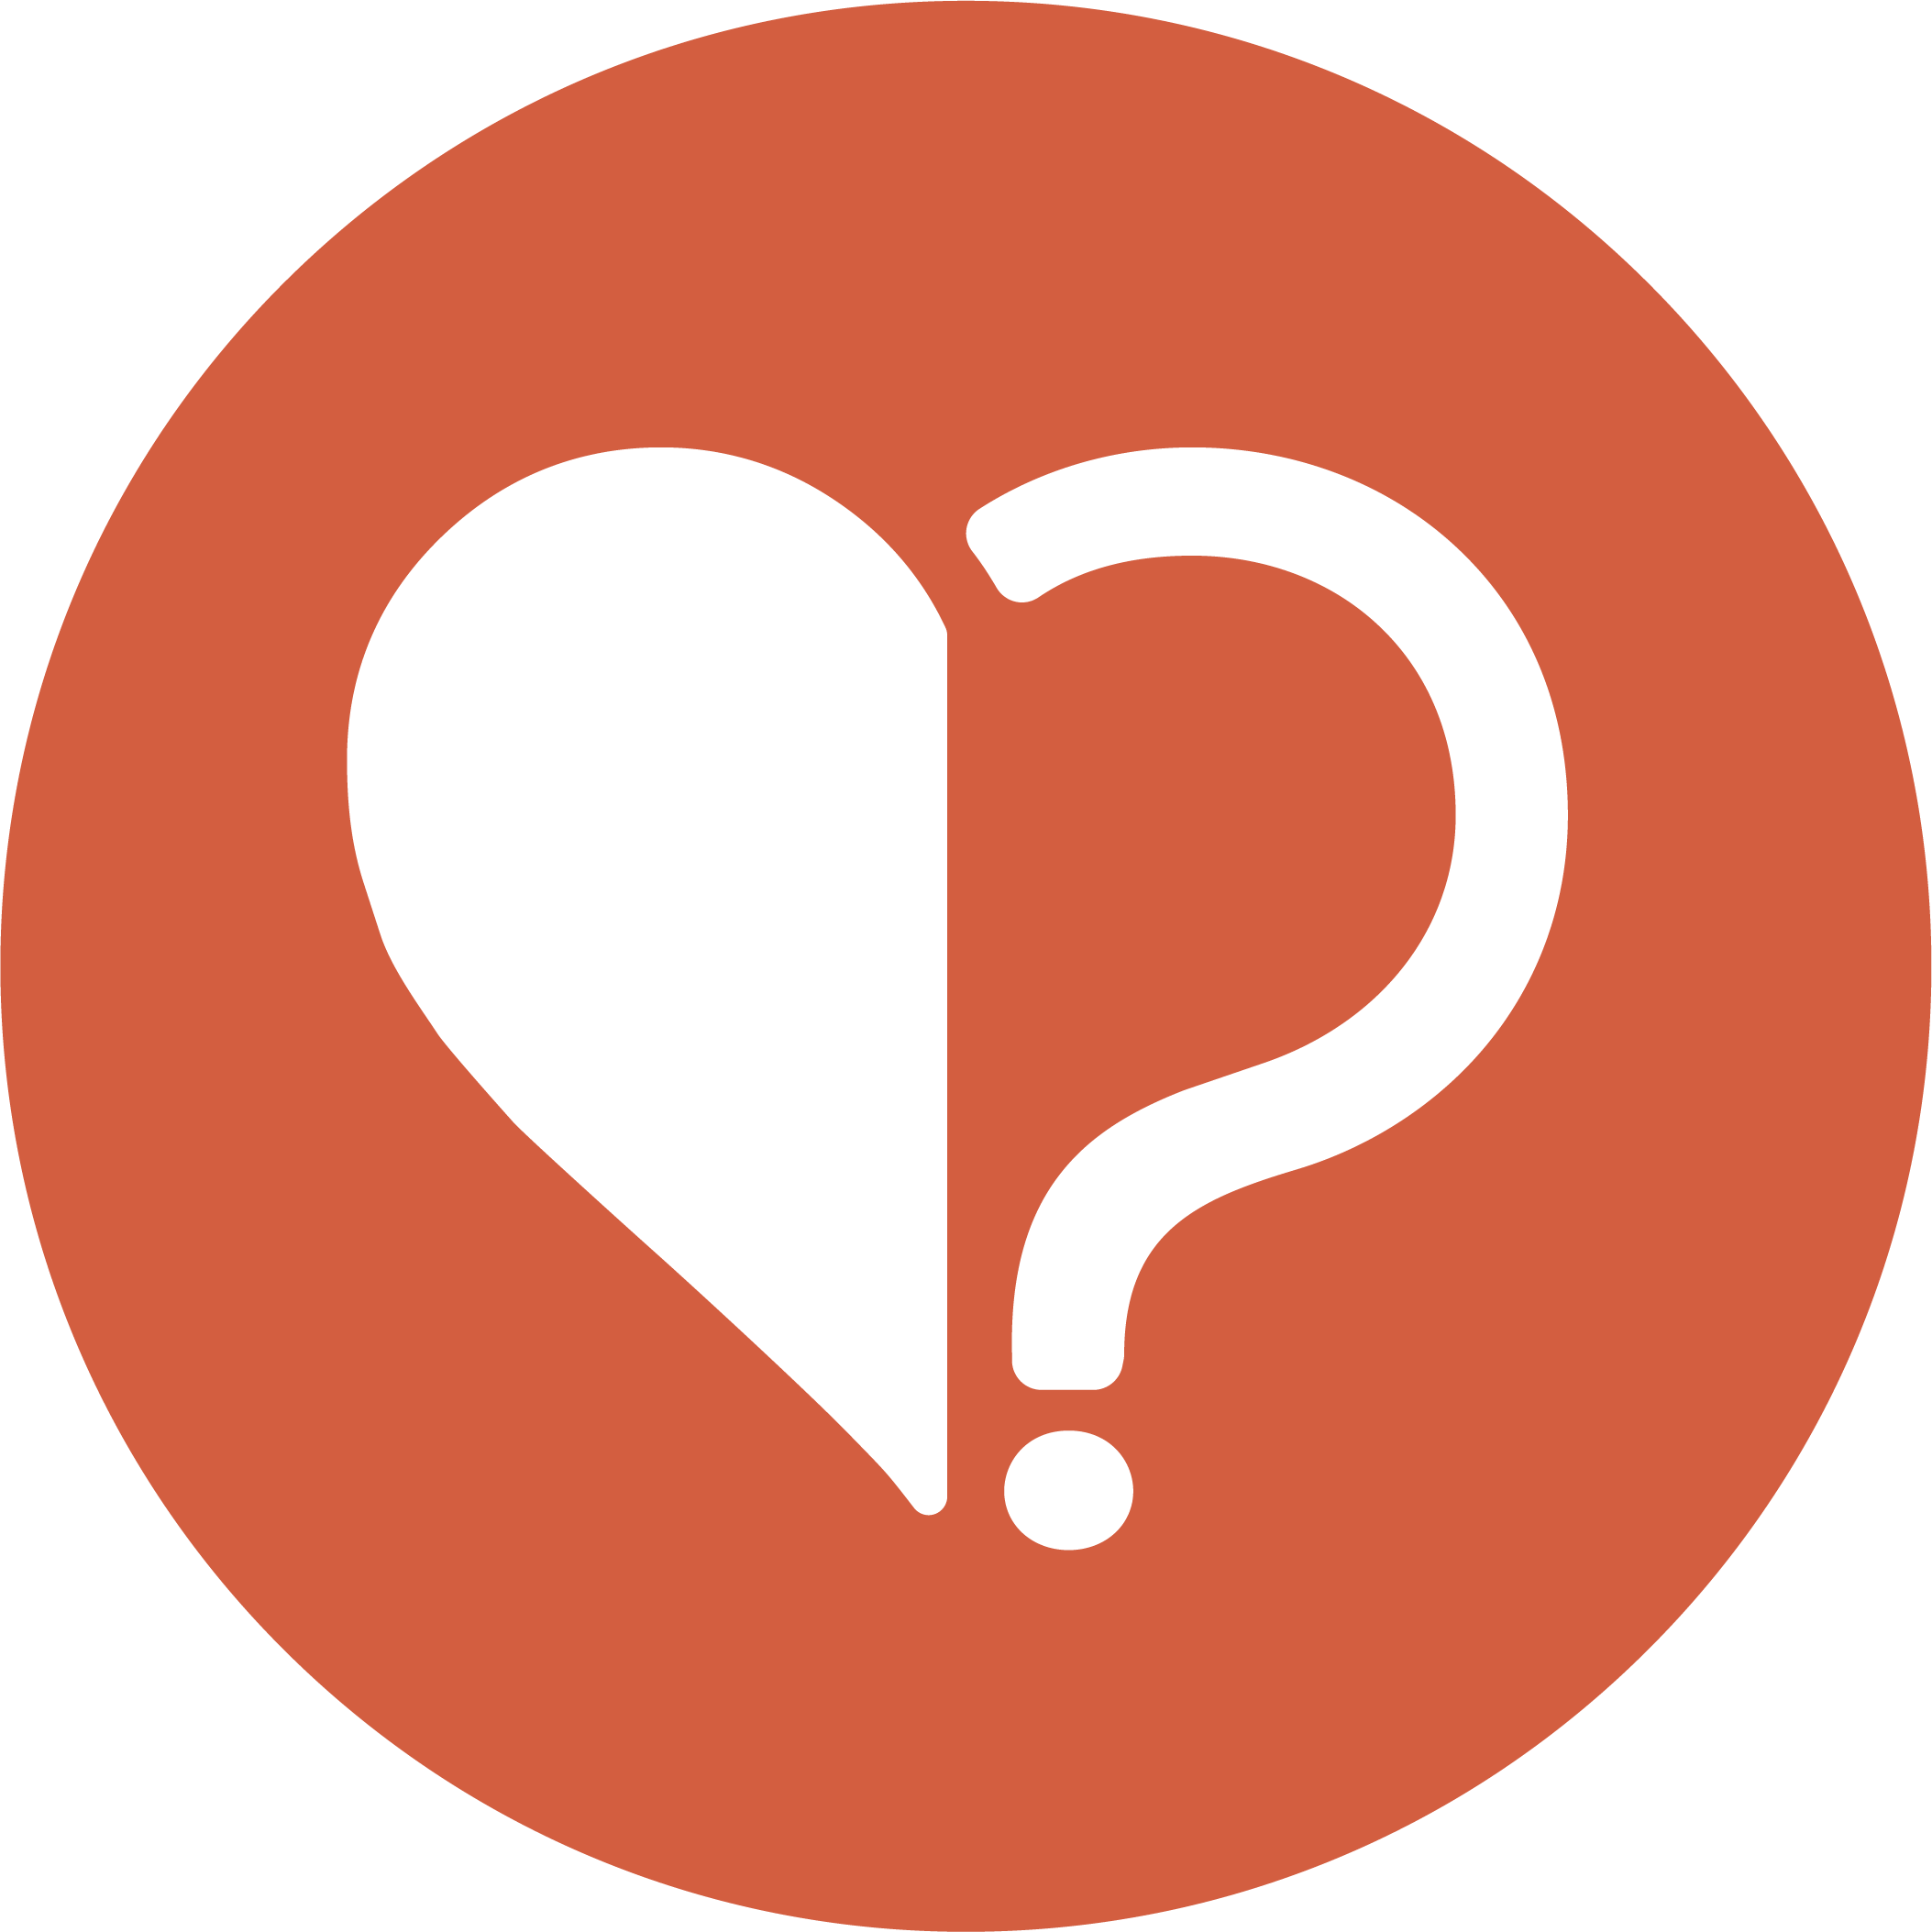 - What if love isn't what we've been told it is?What if love was about sacrifice andservice, not affirmation or sentimentality? Would we still want it?